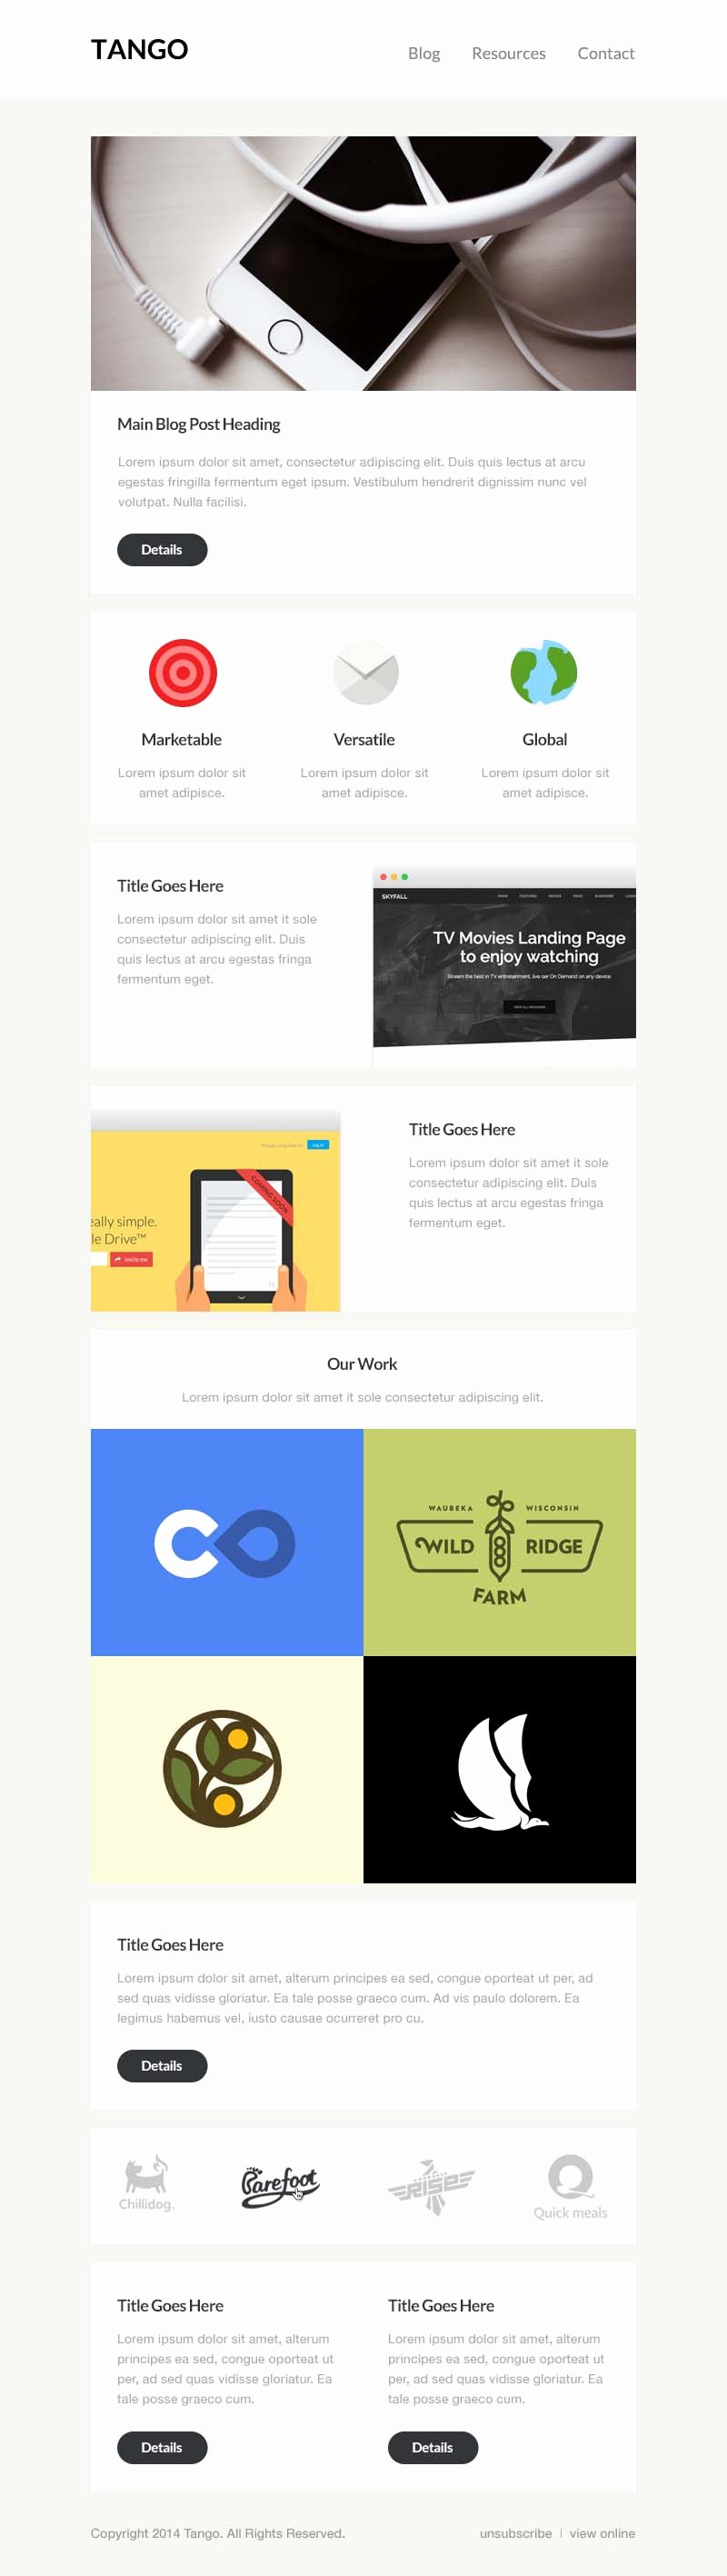 Free Email Template Psd New Free Email Psd Template